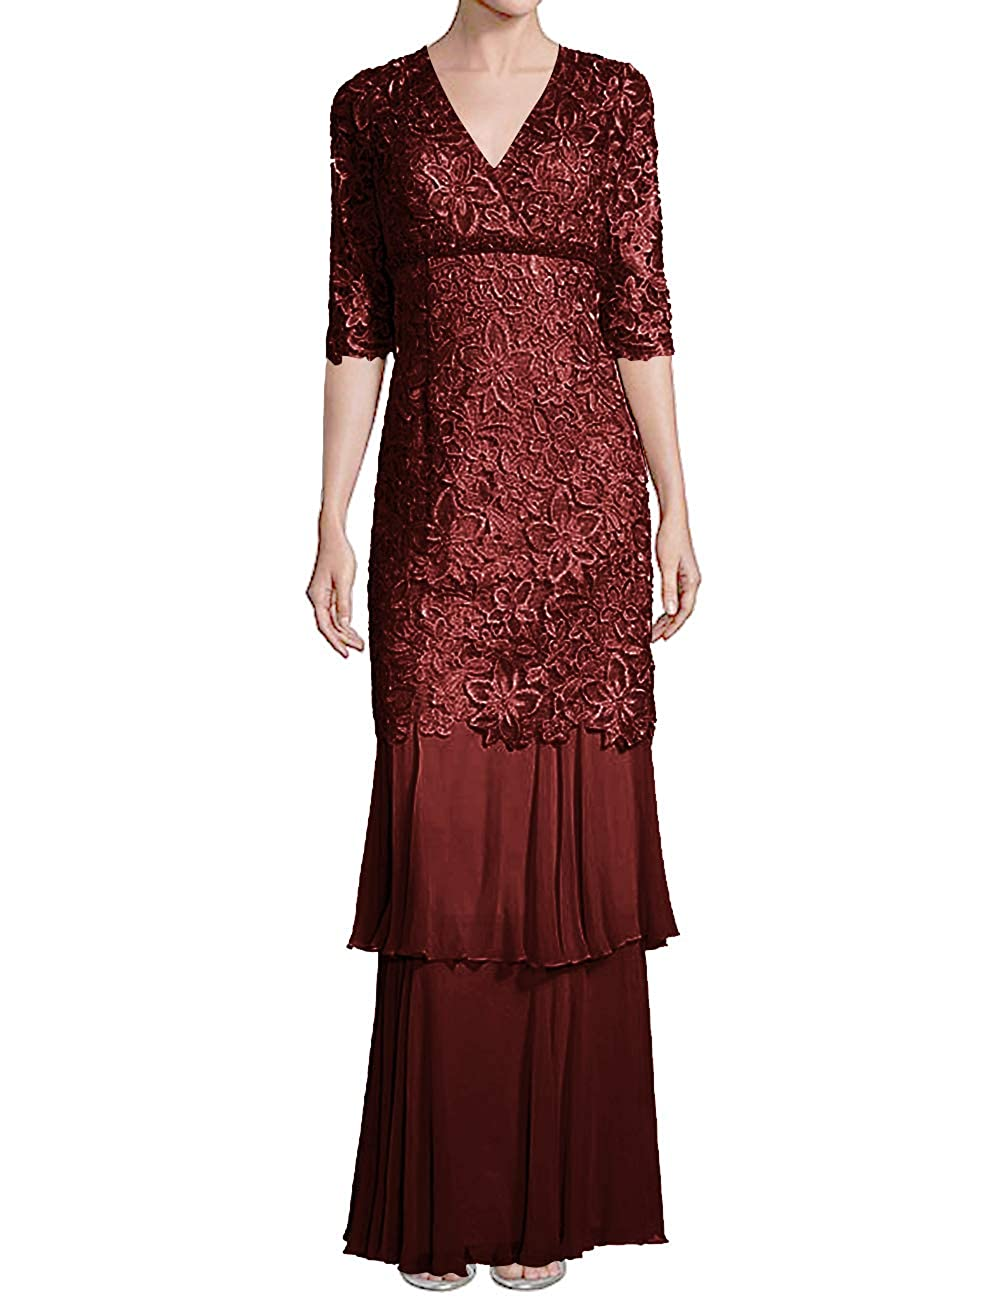 Dark Burgundy H.S.D Mother of The Bride Dresses Lace Formal Gowns Long Evening Dresses Sleeve Tiered